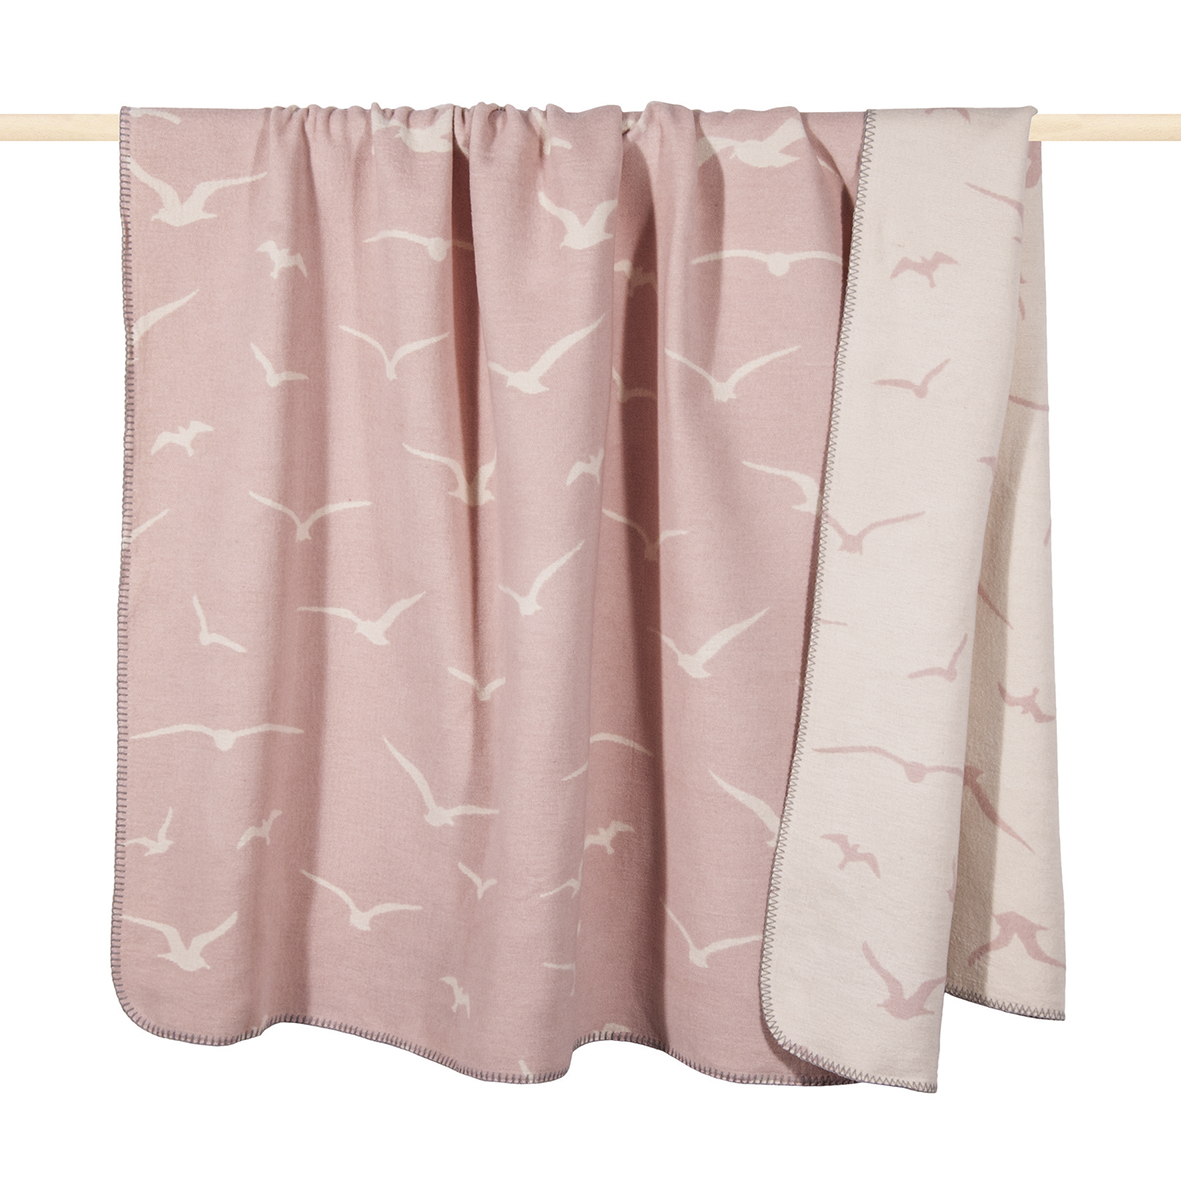 Decke - Seagull Dusty Pink 150x200 - PAD home design